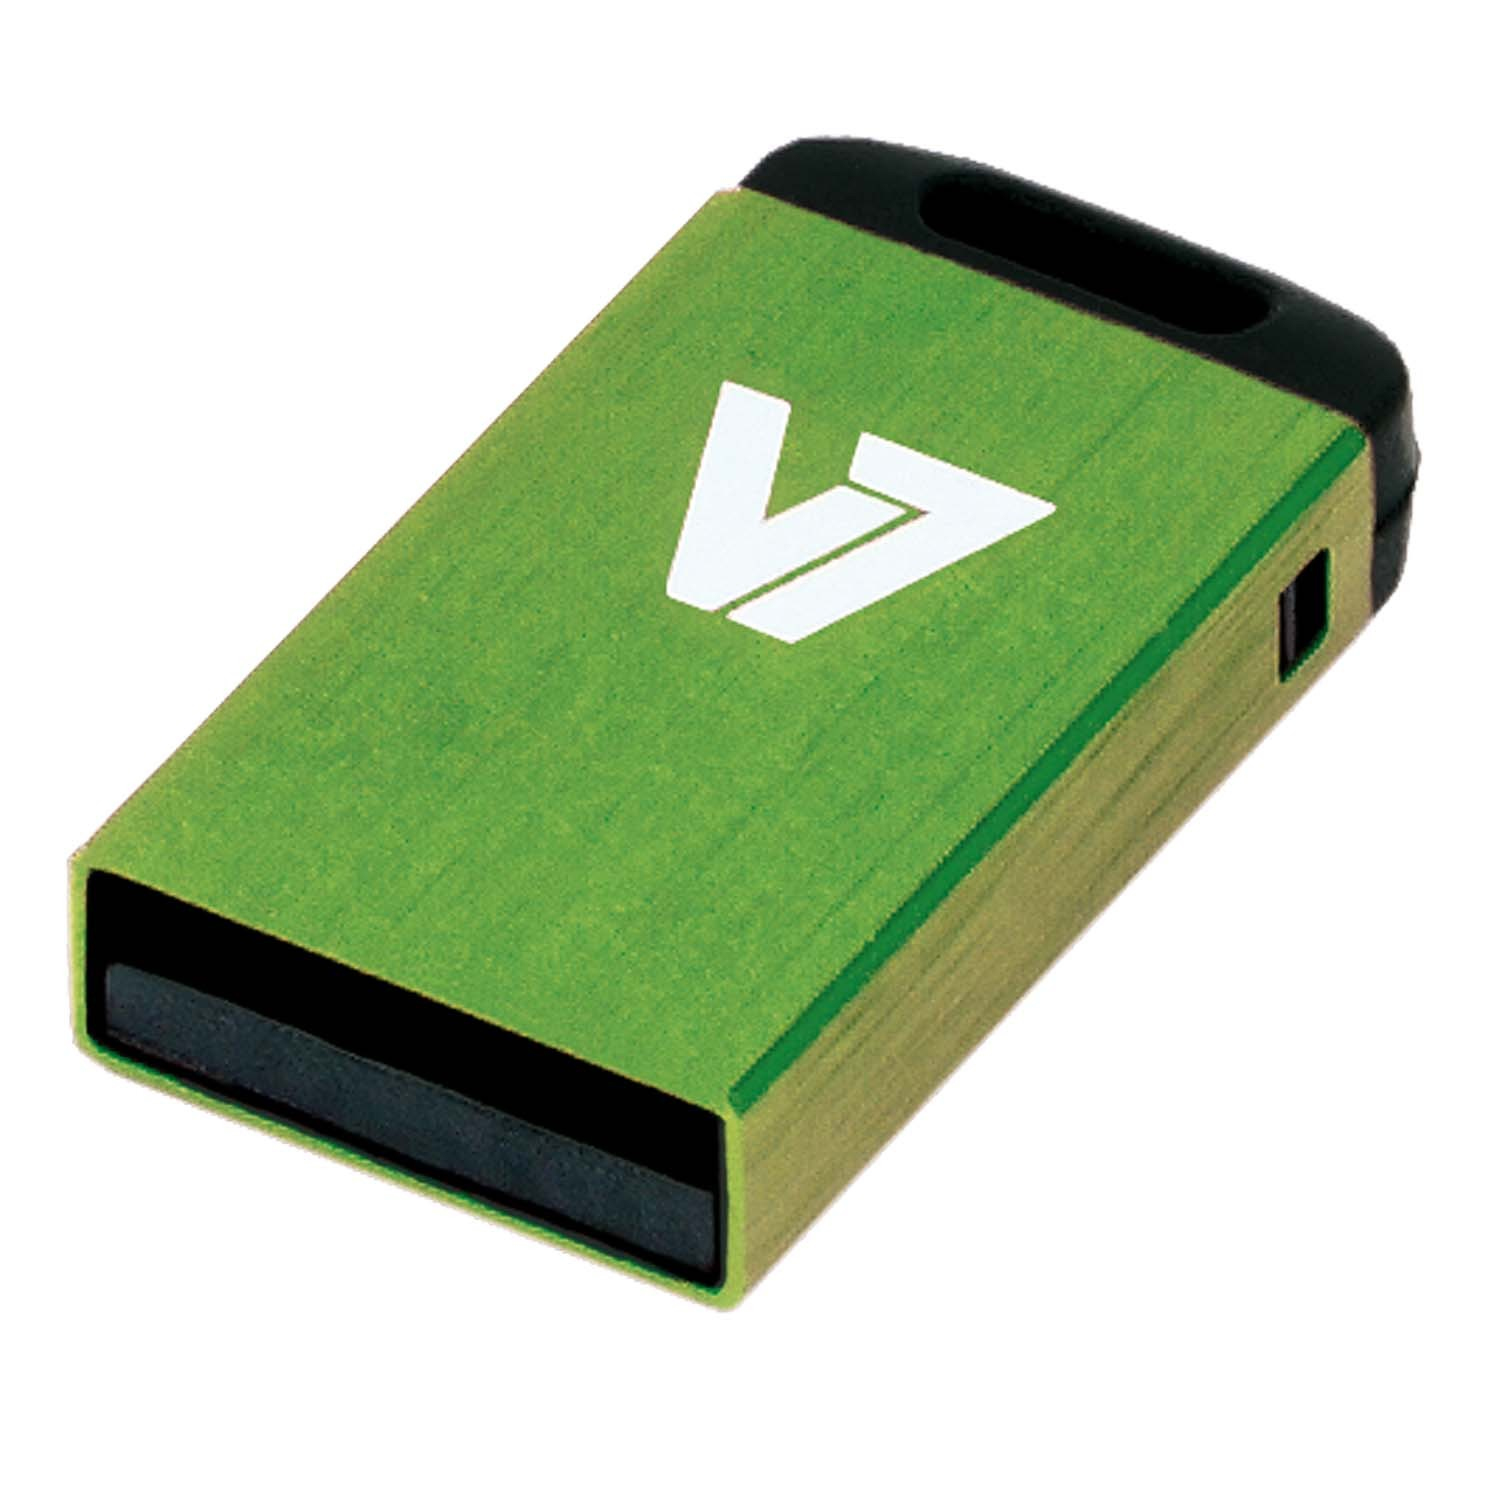 V7 Nano USB 2.0 32GB USB flash drive USB Type-A Groen